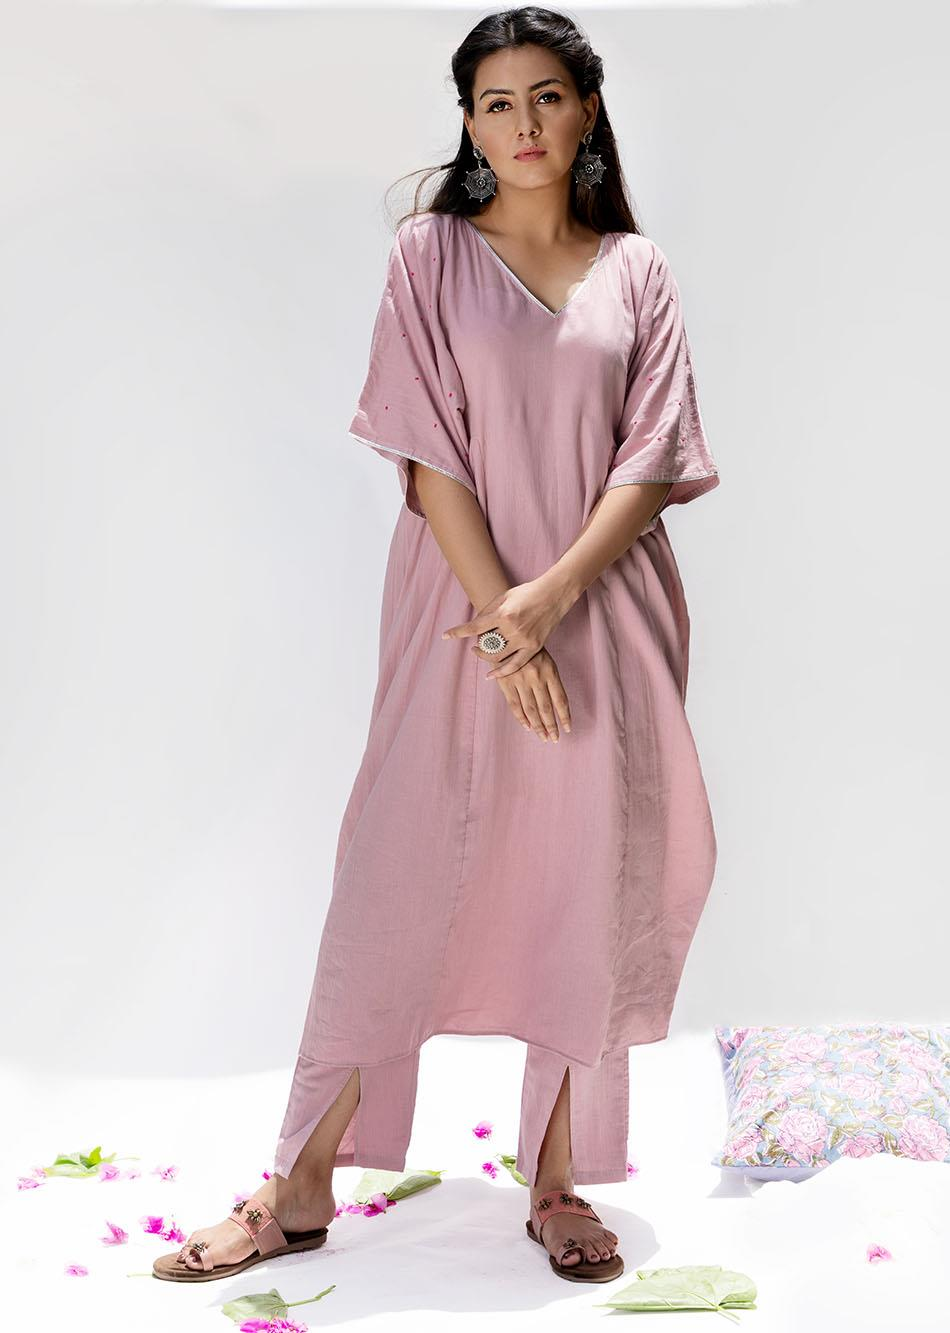 Gulabi- The kaftan style set